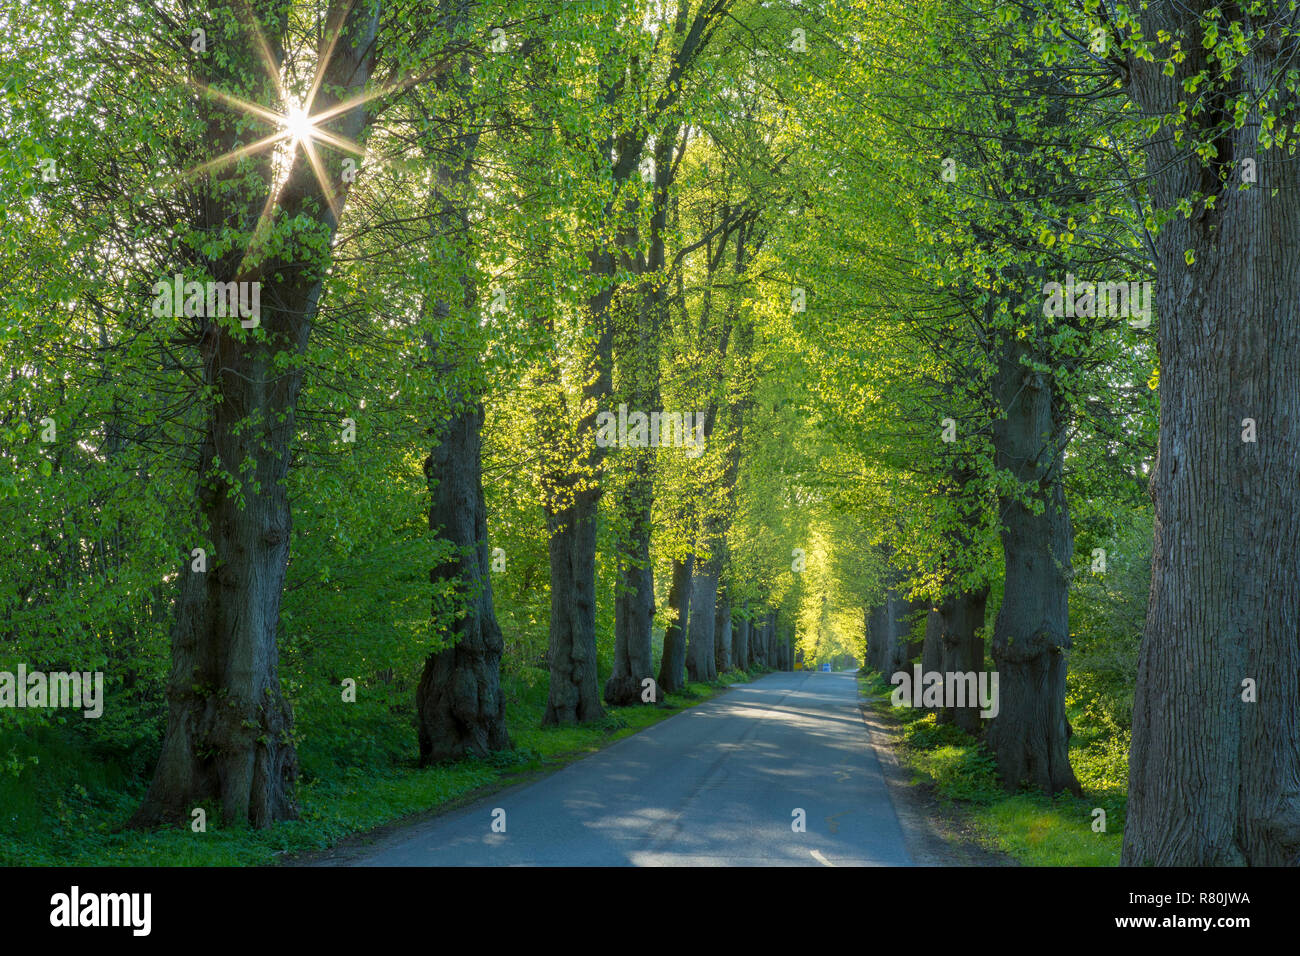 Large-leaved Lime (Tilia platyphyllos). Tree avenue in spring. Schleswig-Holstein, Deutschland Stock Photo